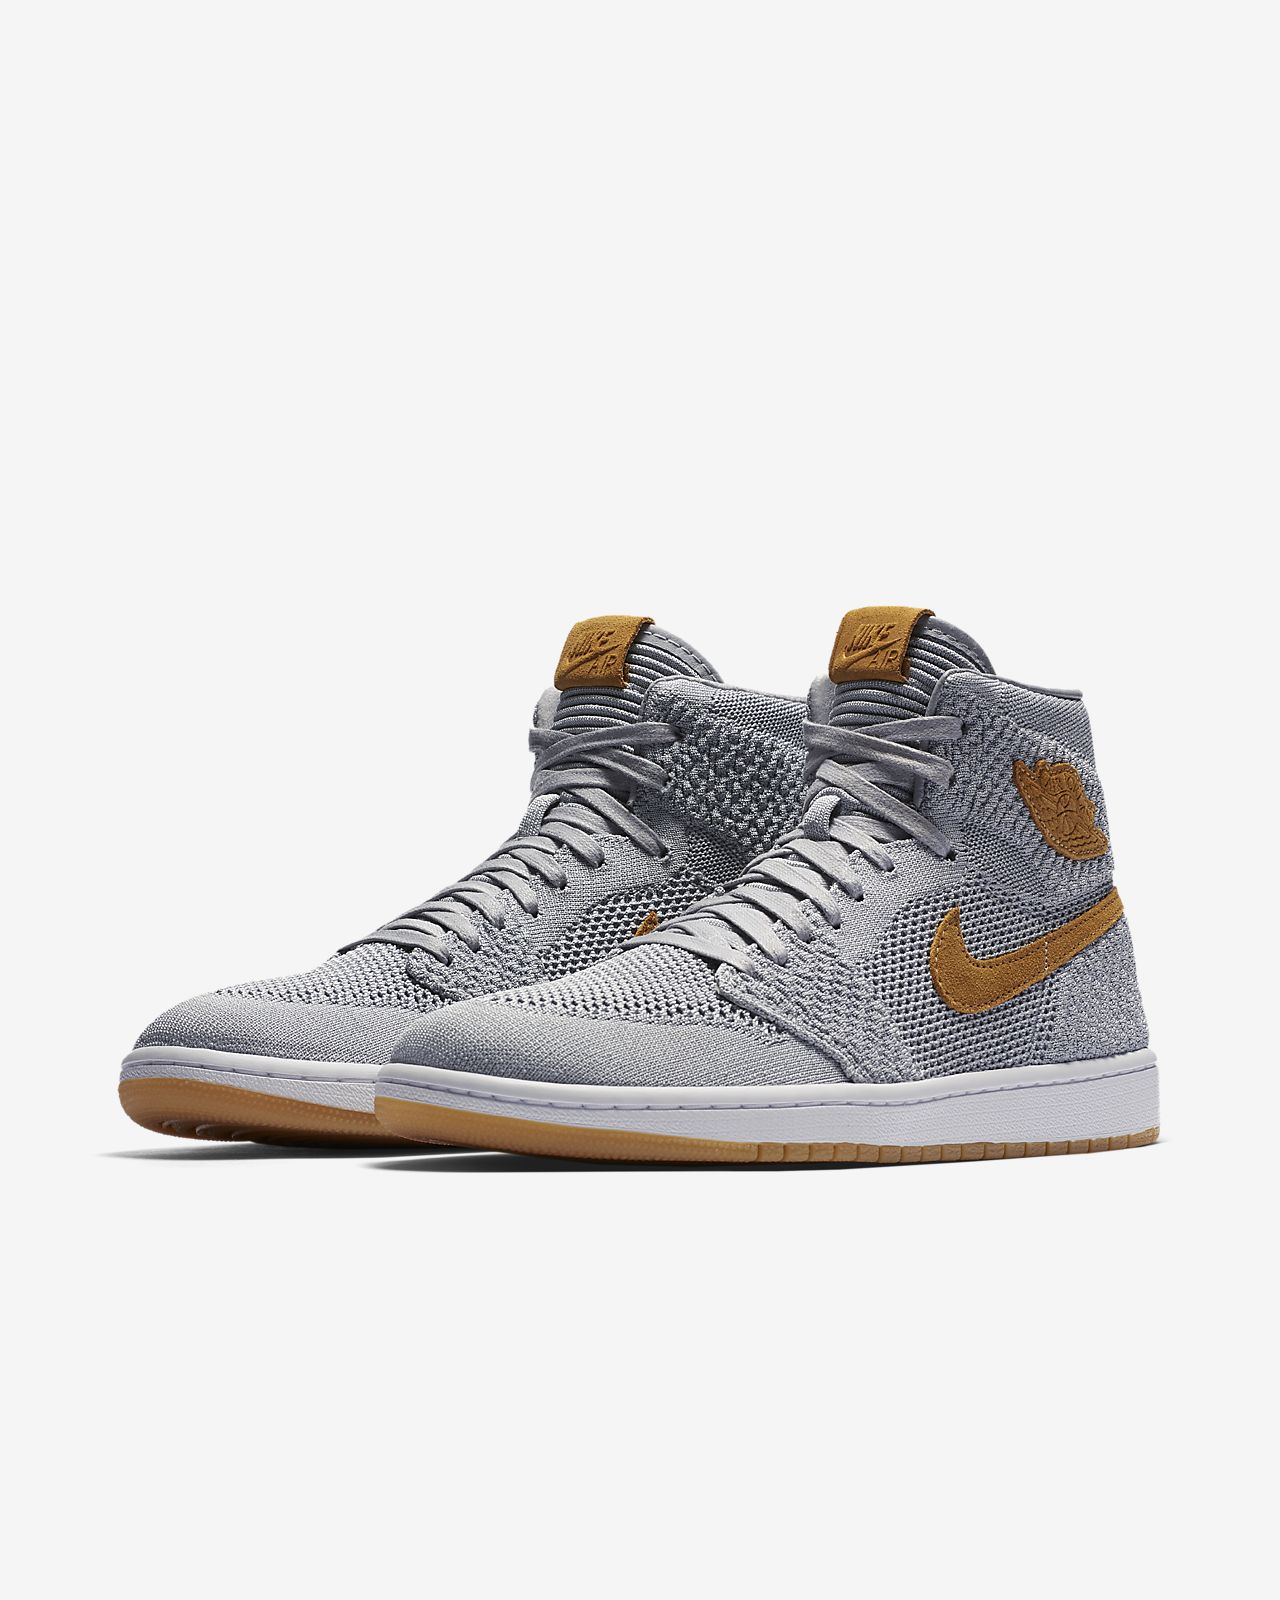 e517fb6e82e3d8 Air Jordan 1 Retro High Flyknit Men s Shoe. Nike.com GB